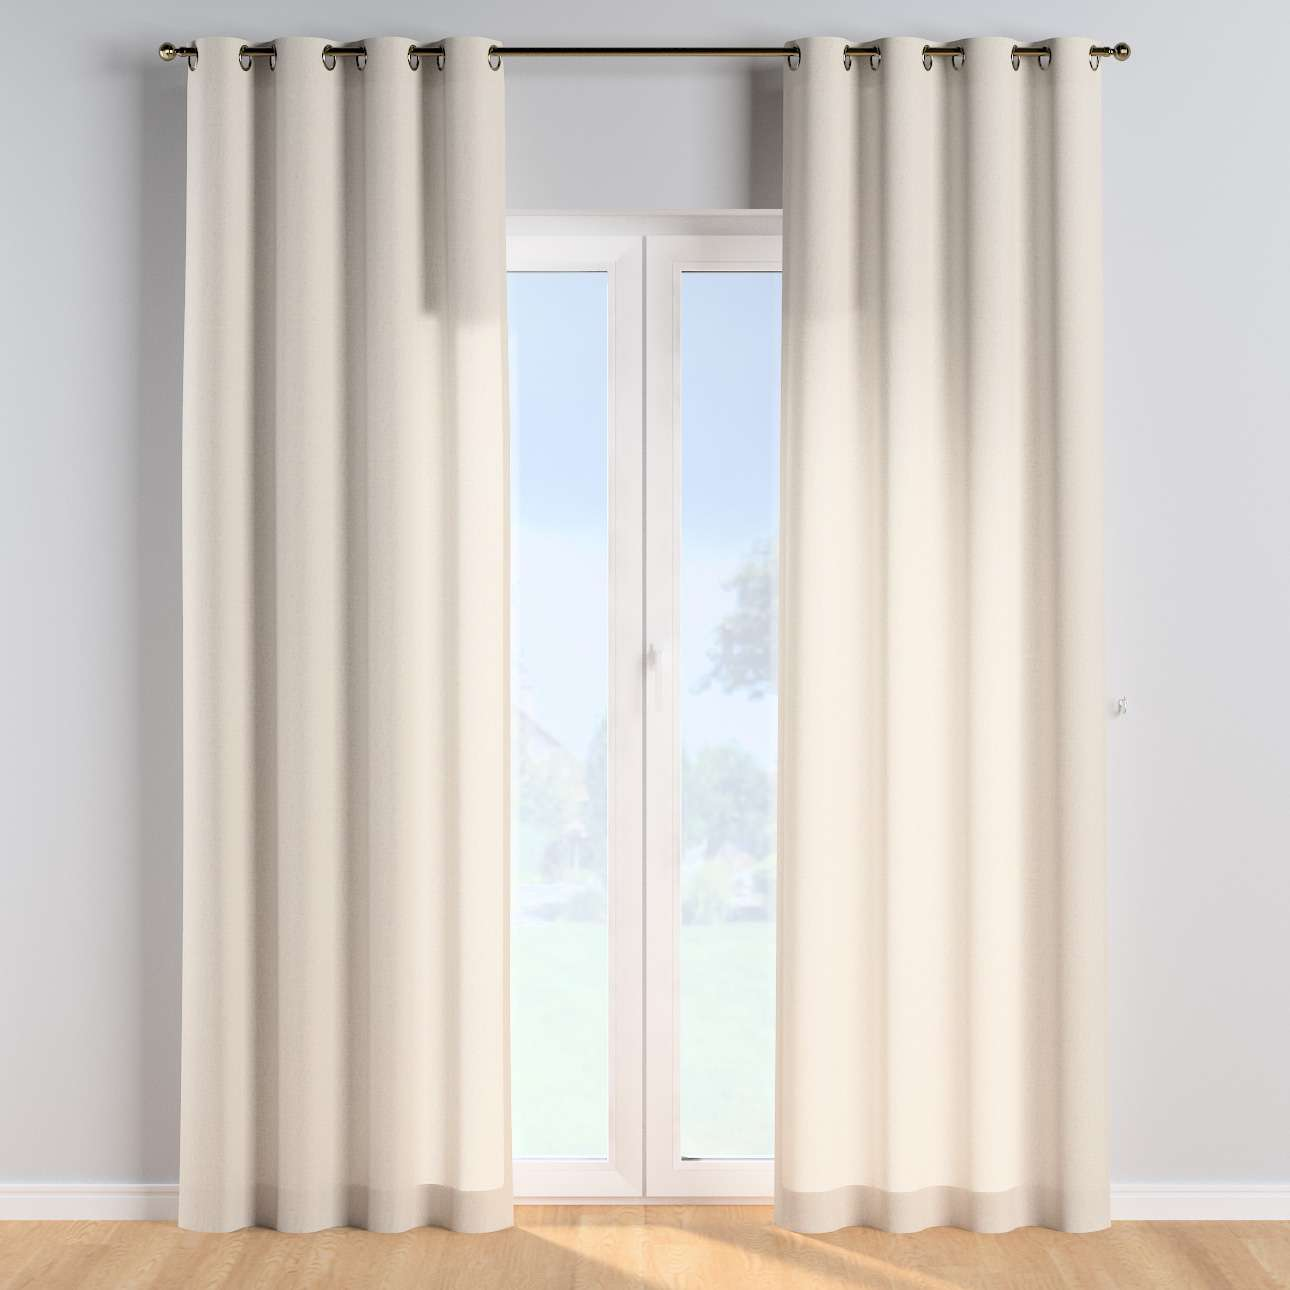 Eyelet curtains in collection Happiness, fabric: 133-65